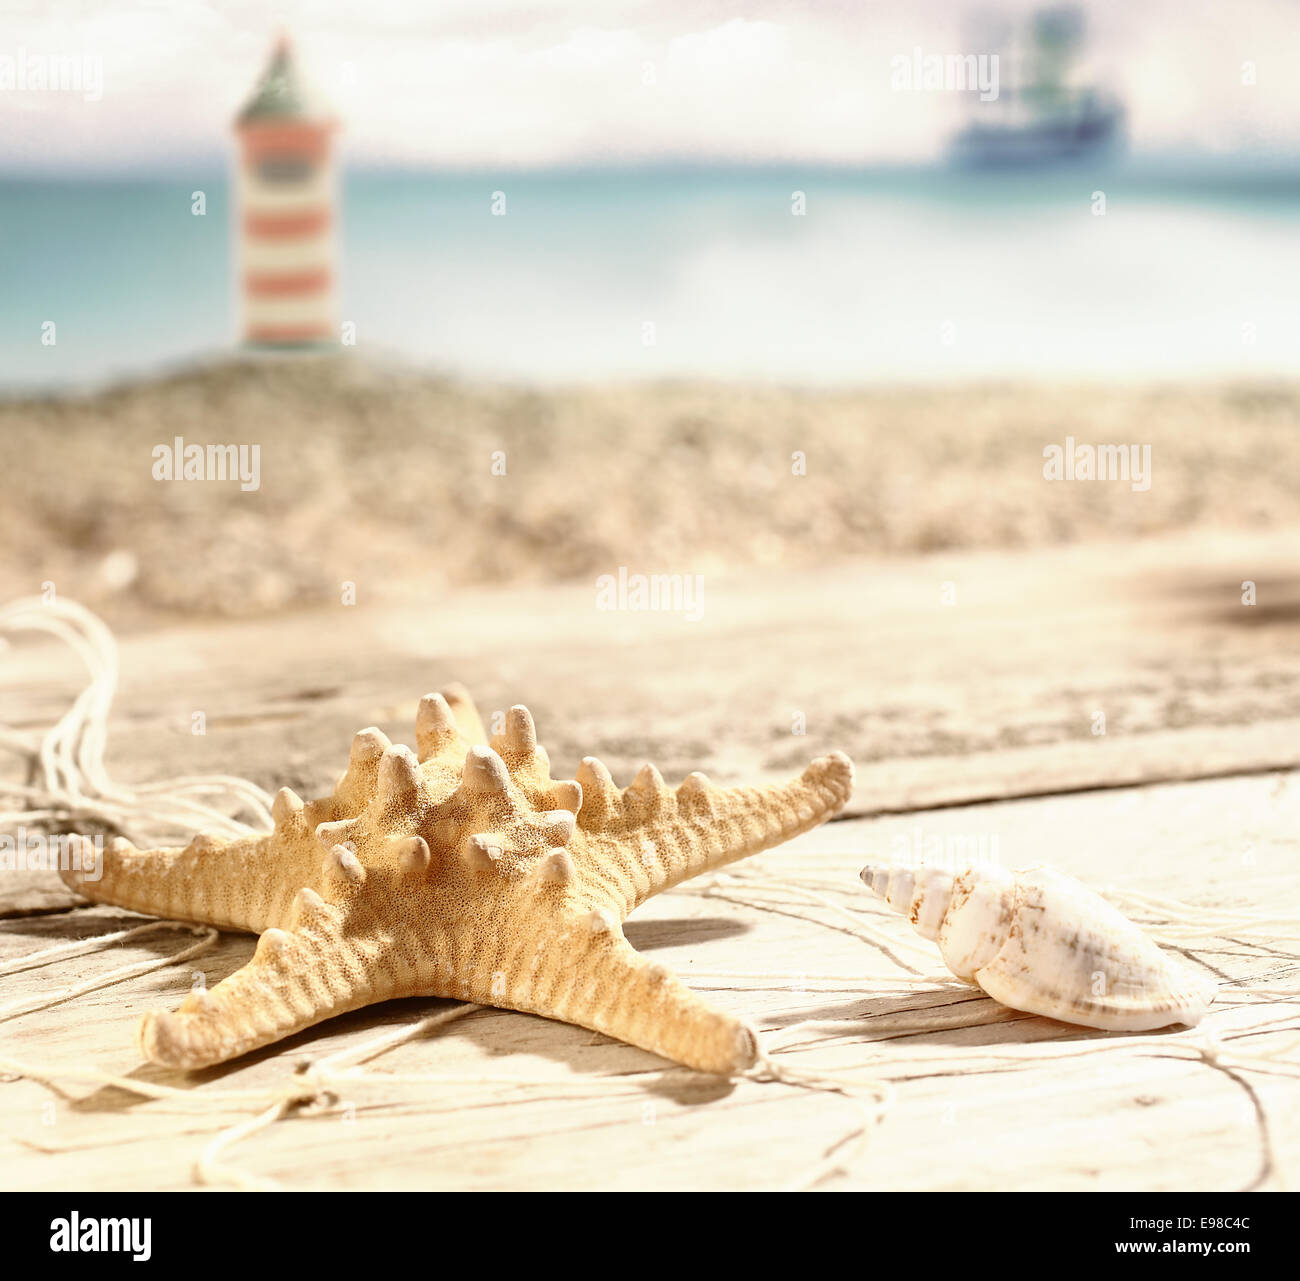 Starfish and a seashell lying in the hot summer sun on old wooden boards at the seaside with a beach and lighthouse - Stock Image